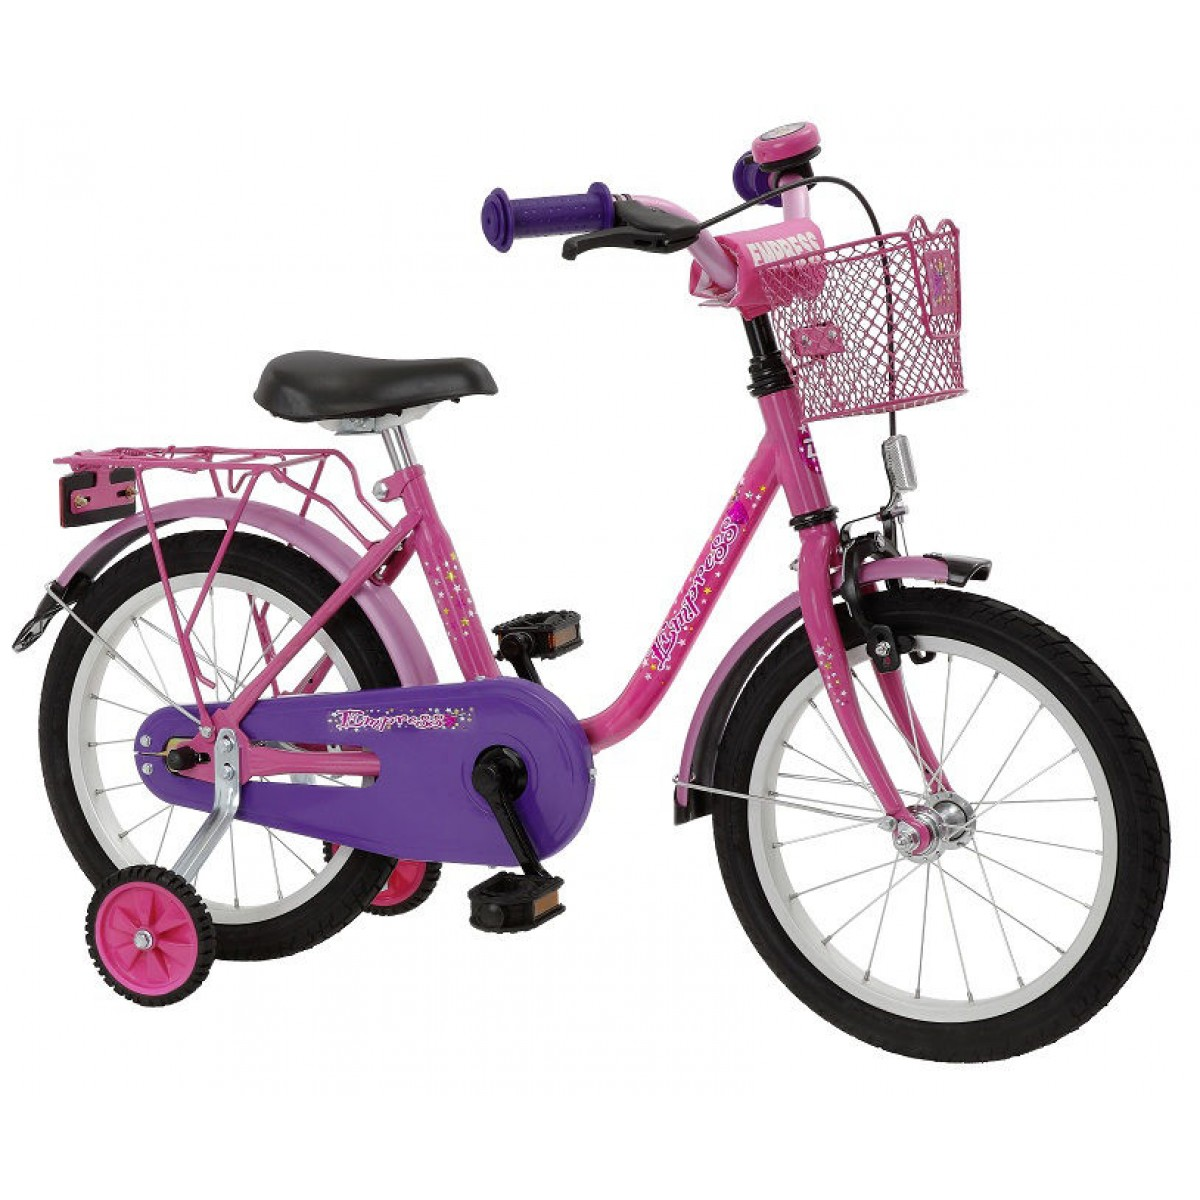 bachtenkirch kinderfahrrad 18 zoll empress pink lila. Black Bedroom Furniture Sets. Home Design Ideas